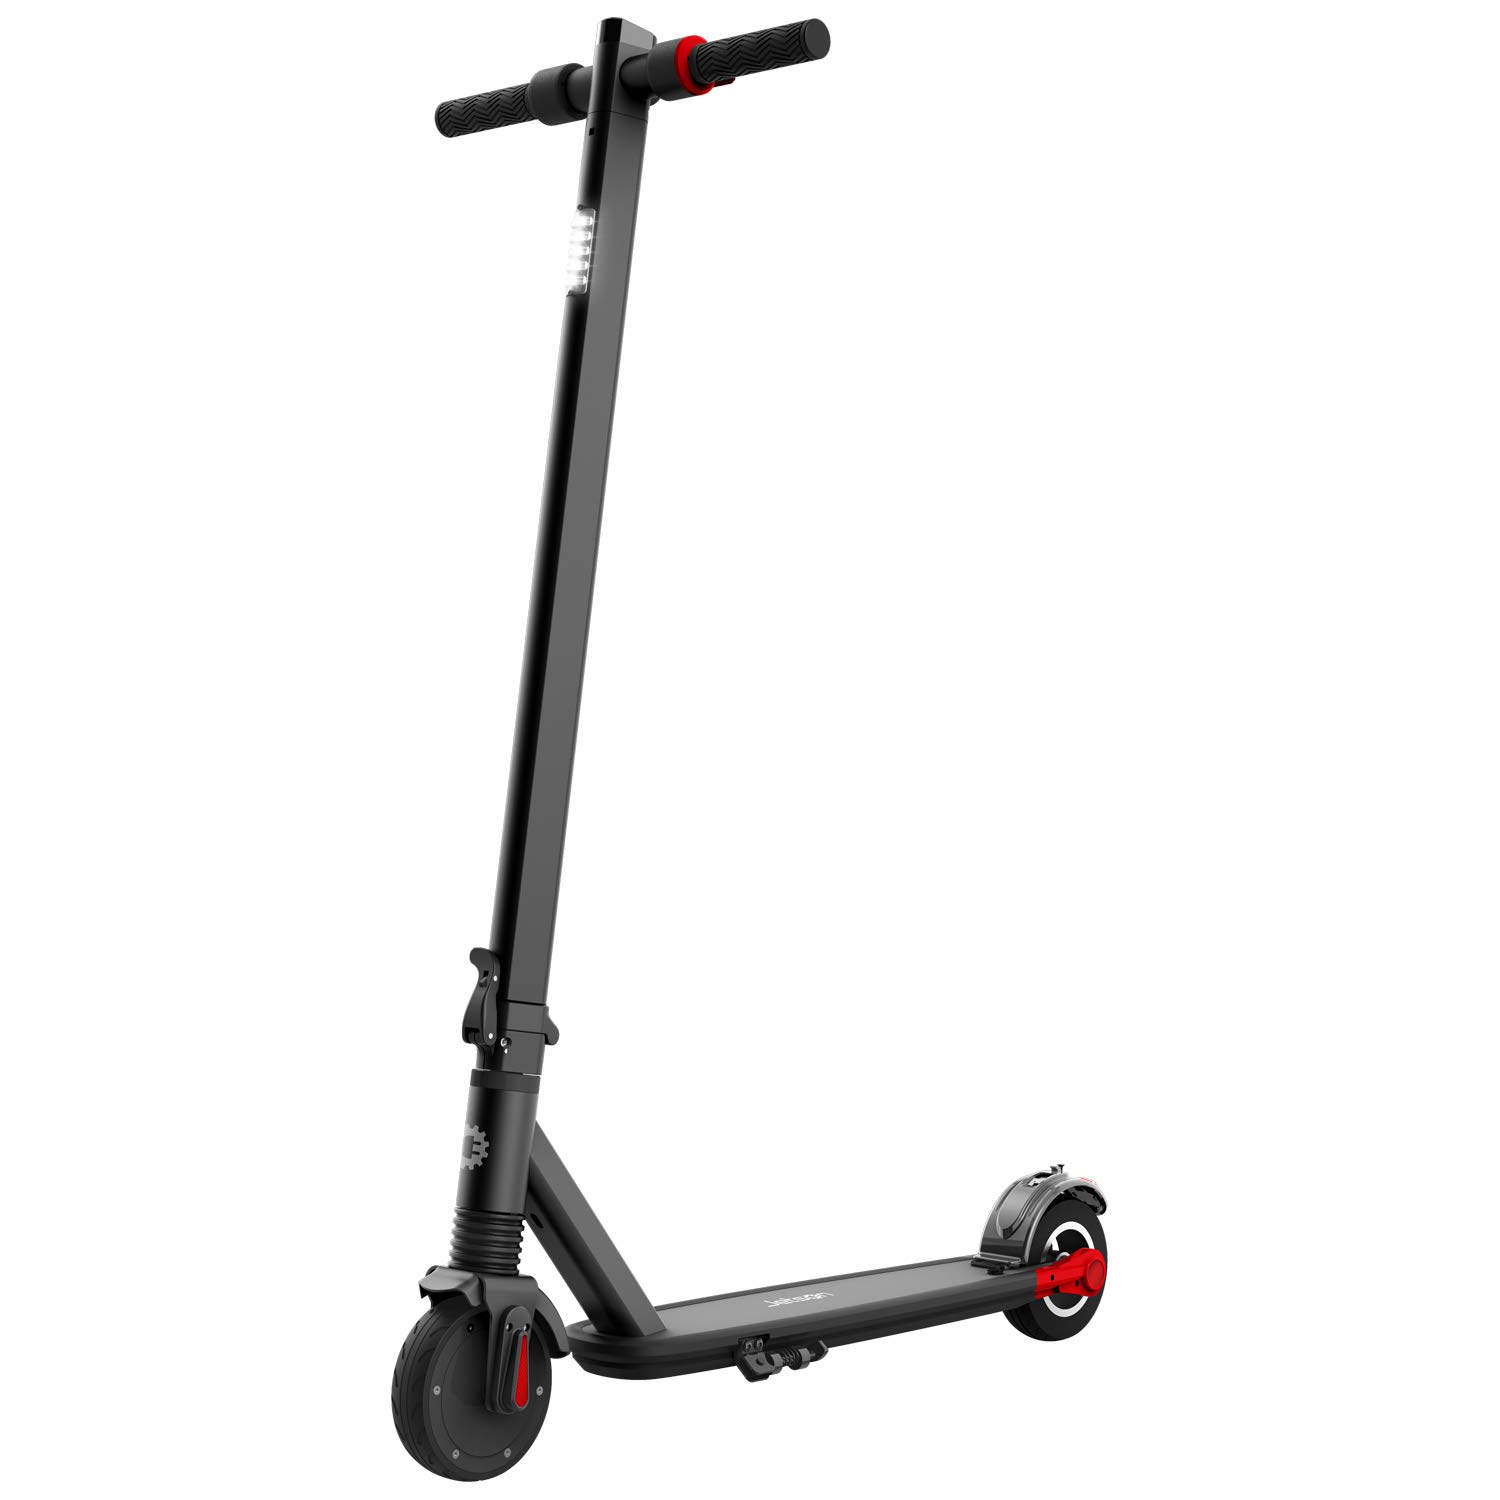 Lightweight and Portable Jetson Element Folding Electric Scooter with LED Headlight for Teens and Adults